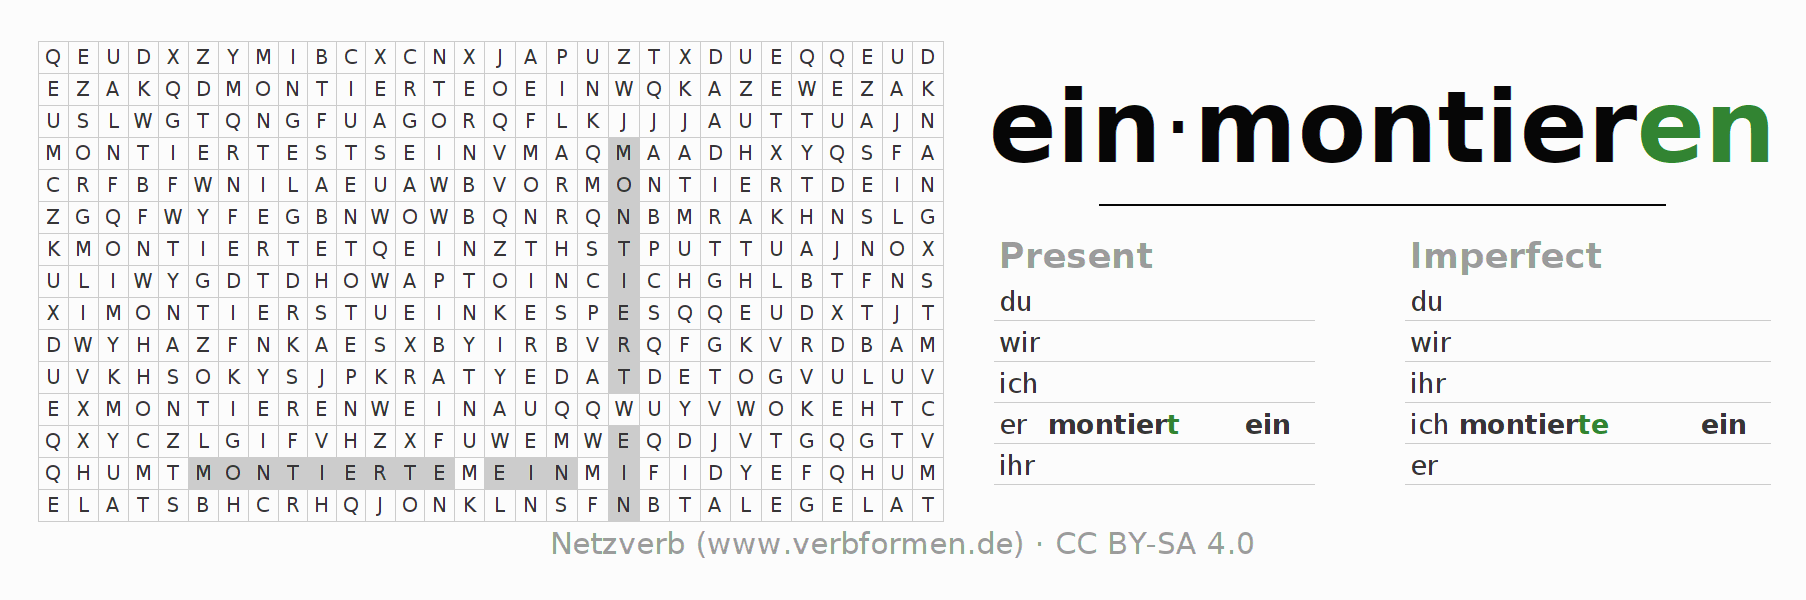 Word search puzzle for the conjugation of the verb einmontieren